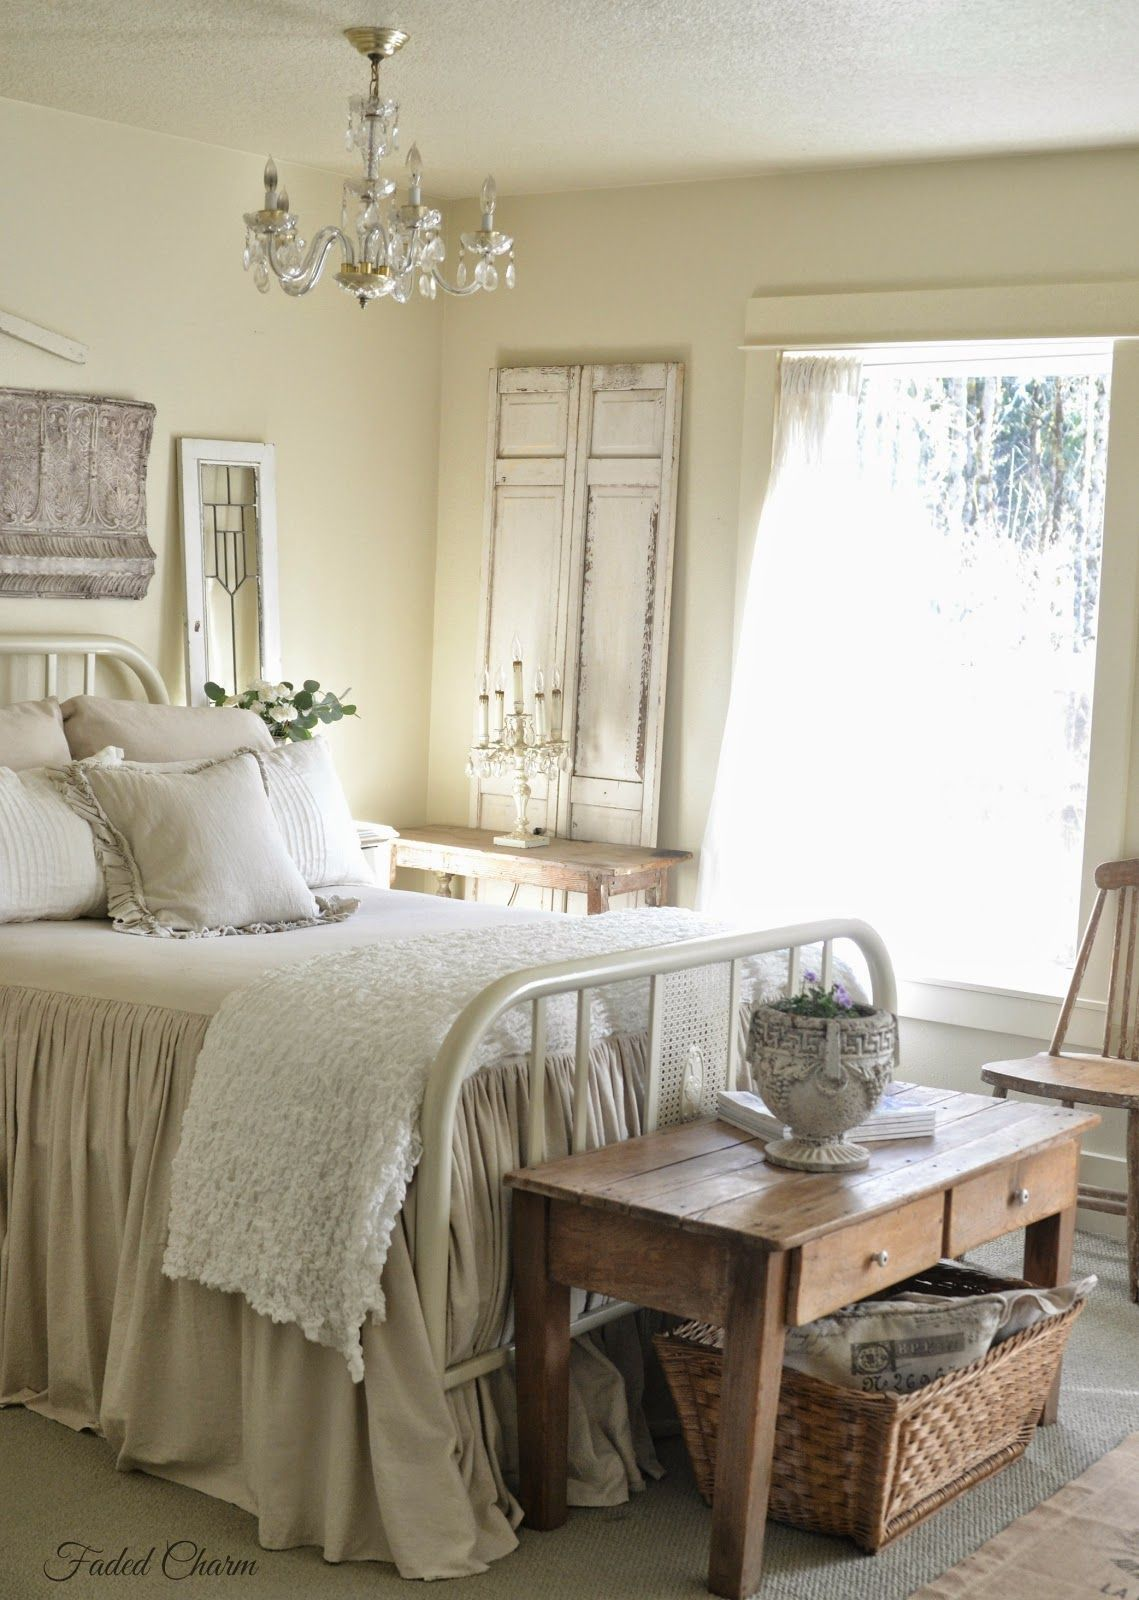 this bedroom from faded charm blog has a bedspread that is so